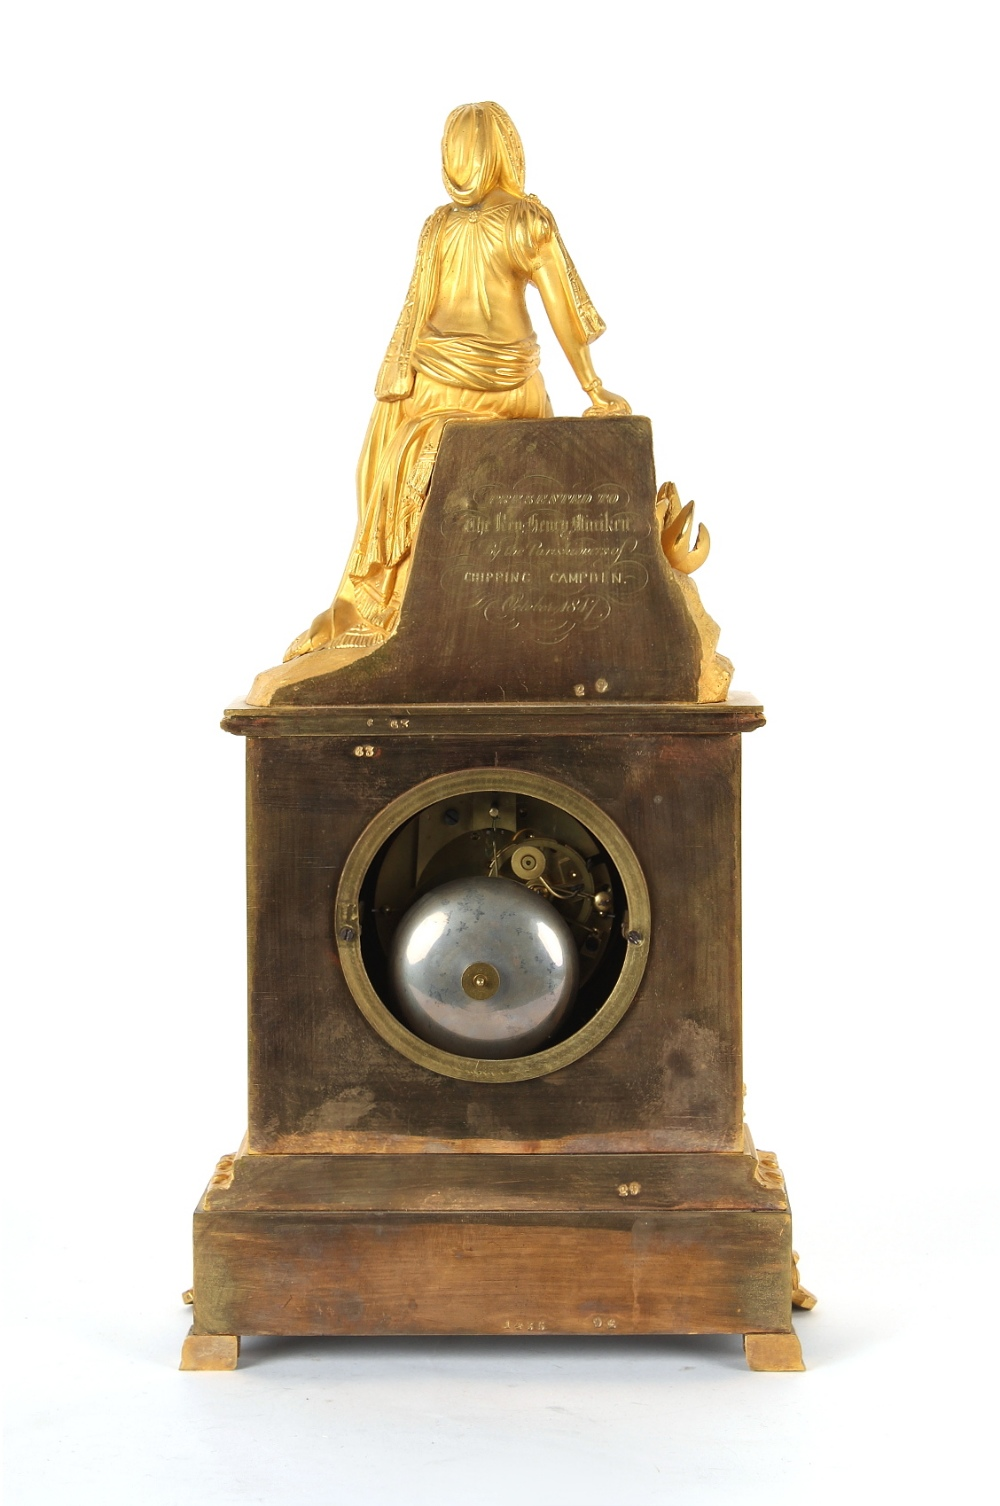 Property of a lady - a French ormolu cased mantel clock, circa 1845, surmounted by a figure of a - Image 3 of 3